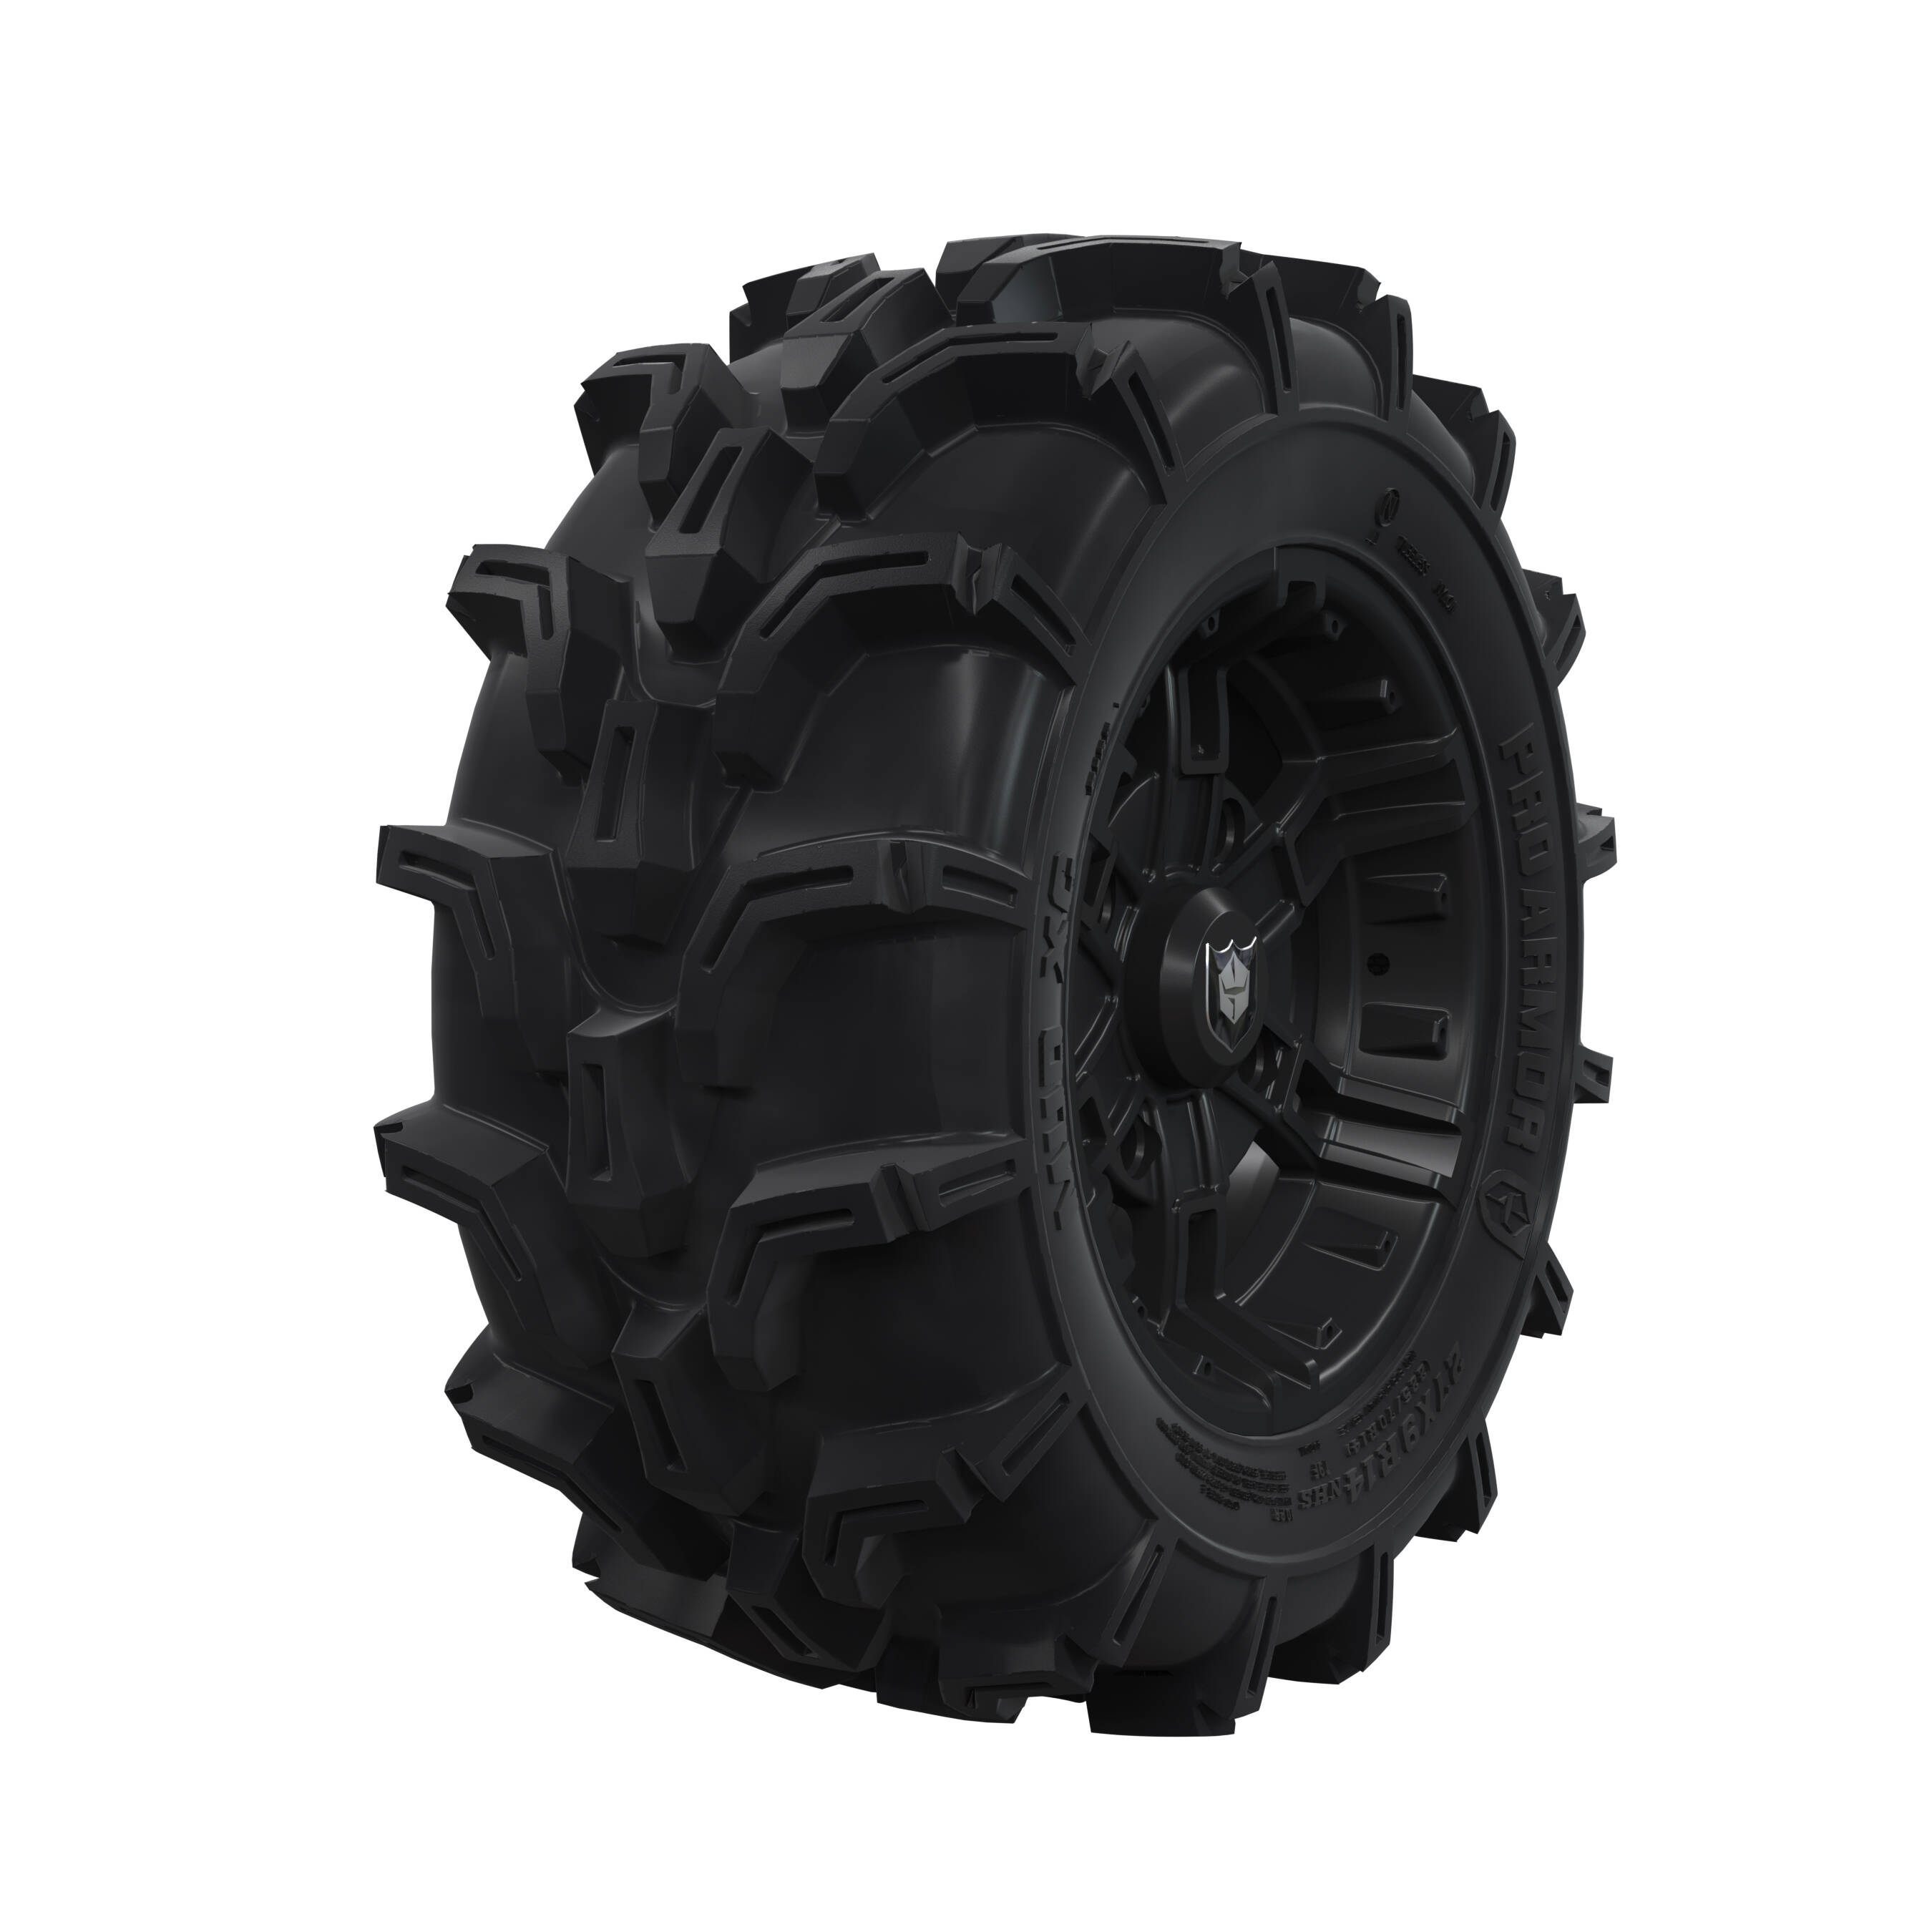 "Pro Amor® Wheel & Tire Set: Mud XC - Buckle - Matte Black - 27""R14"